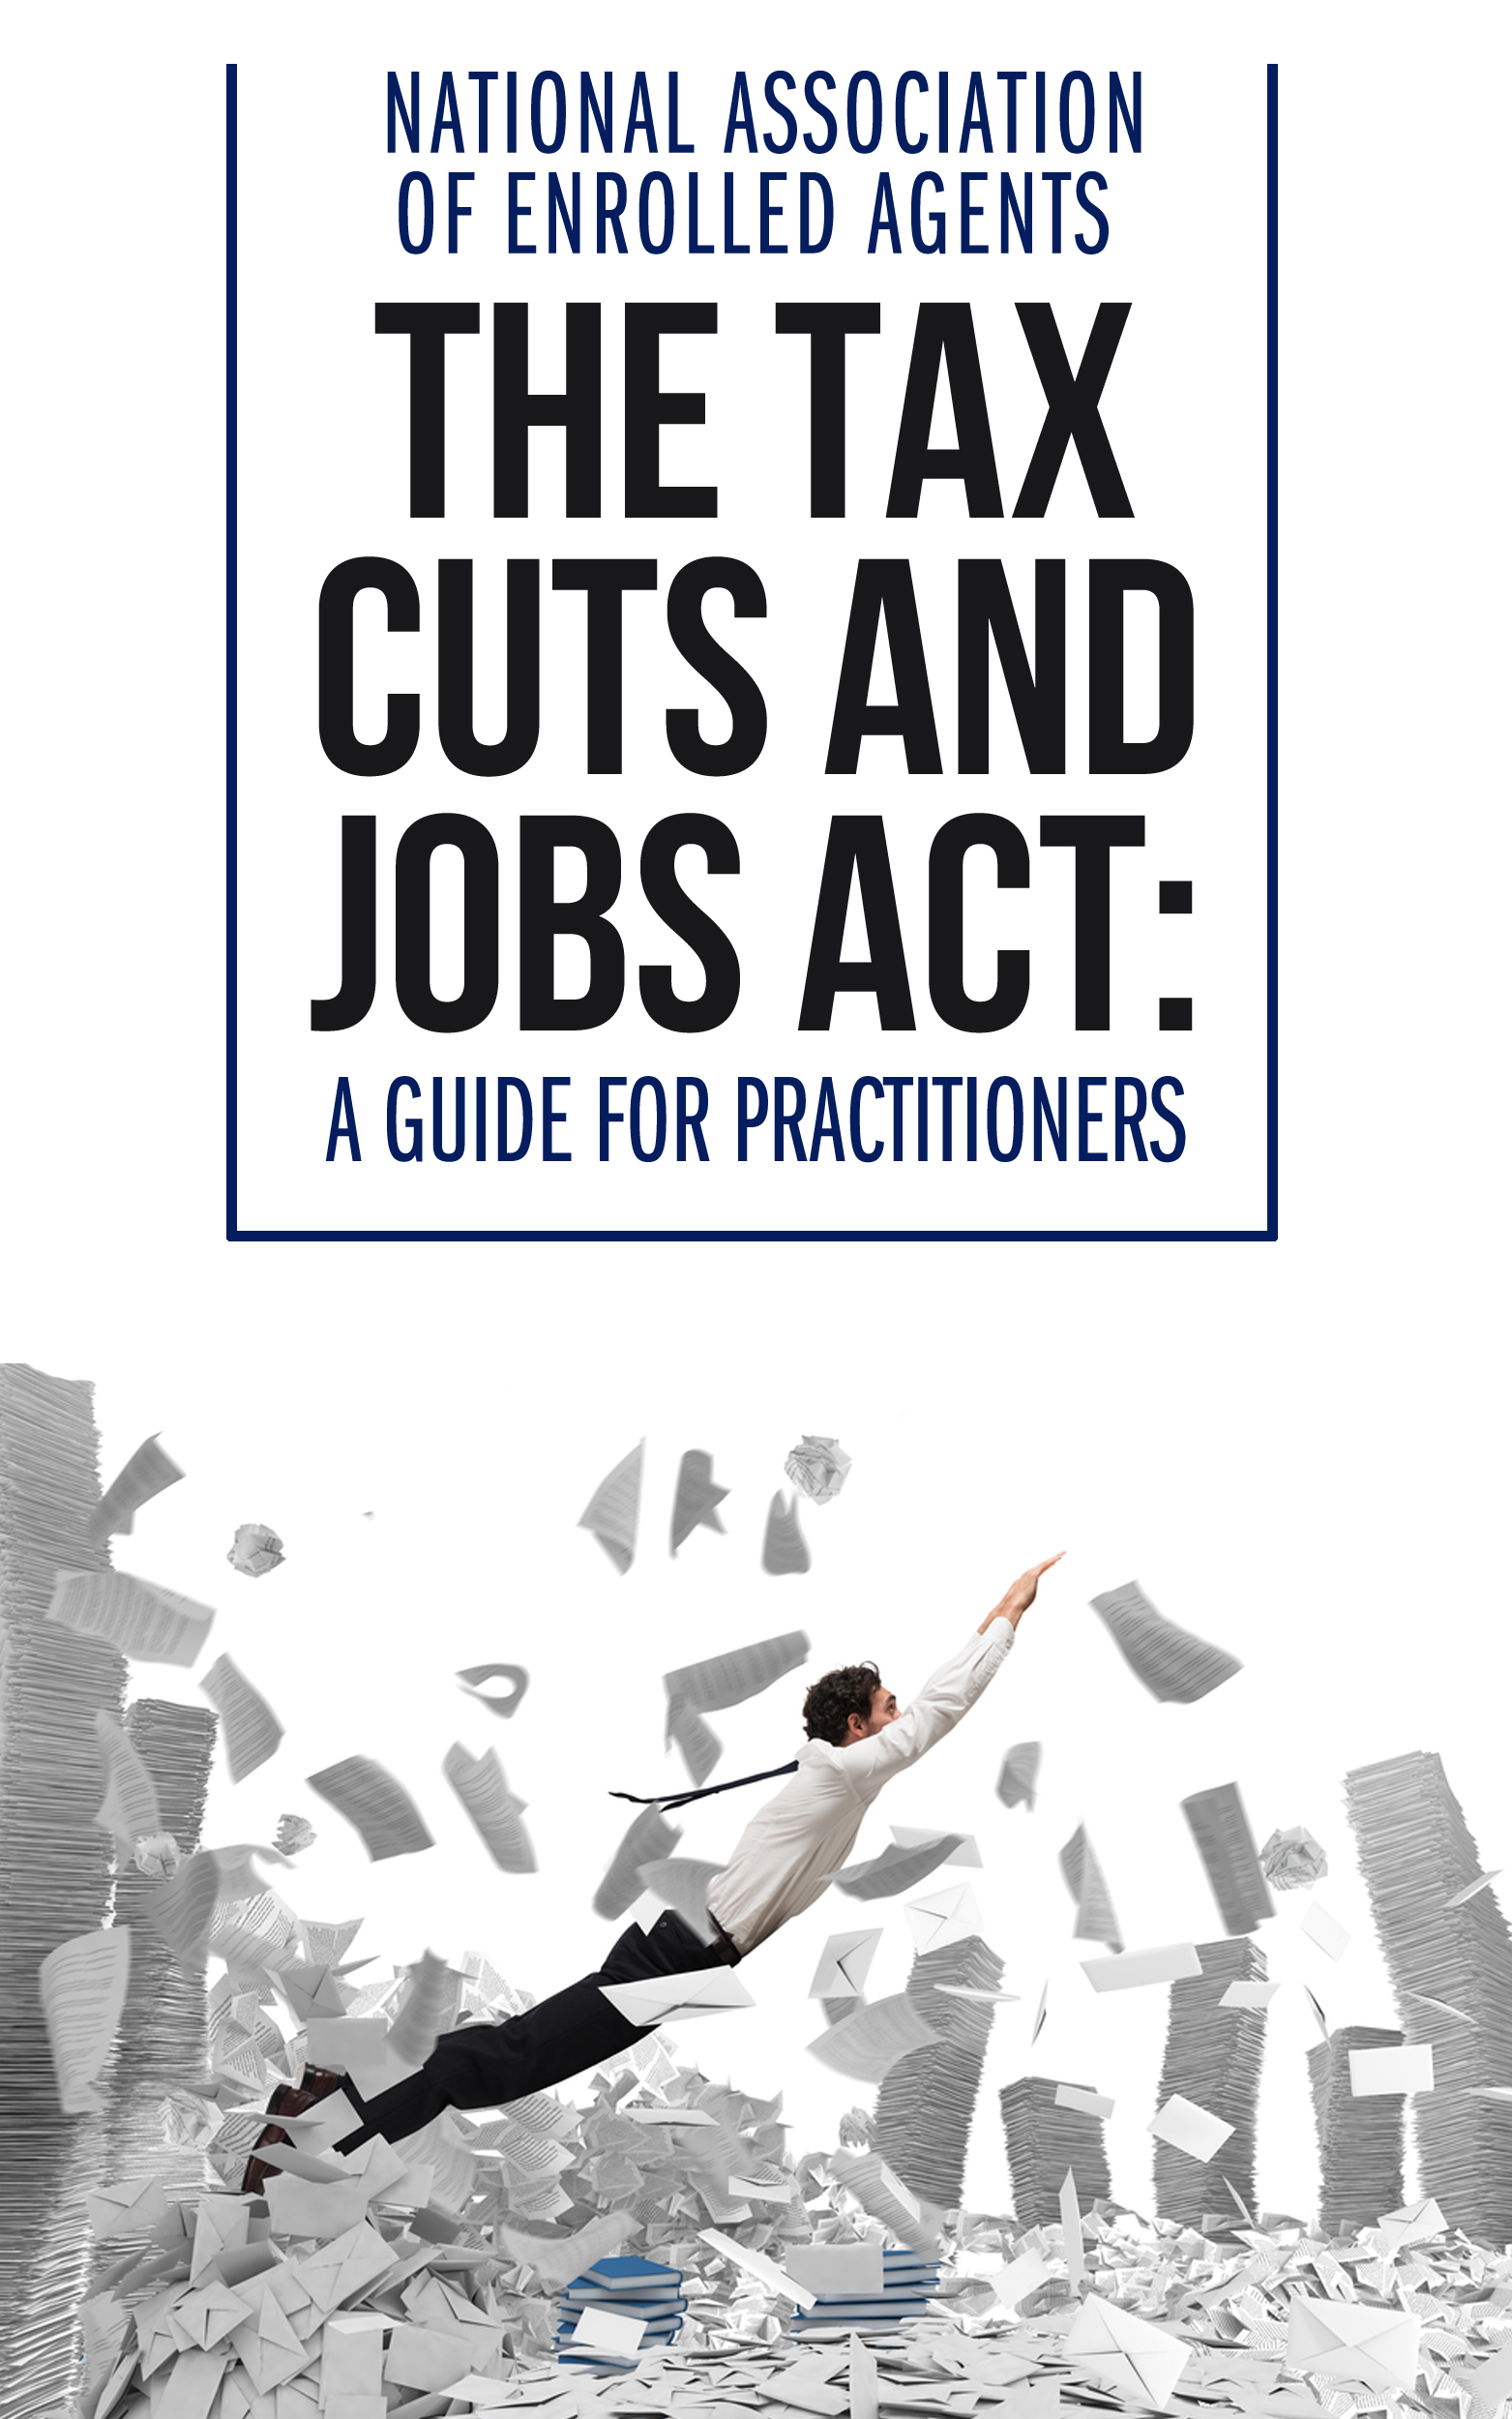 TCJA: A Guide for Practitioners